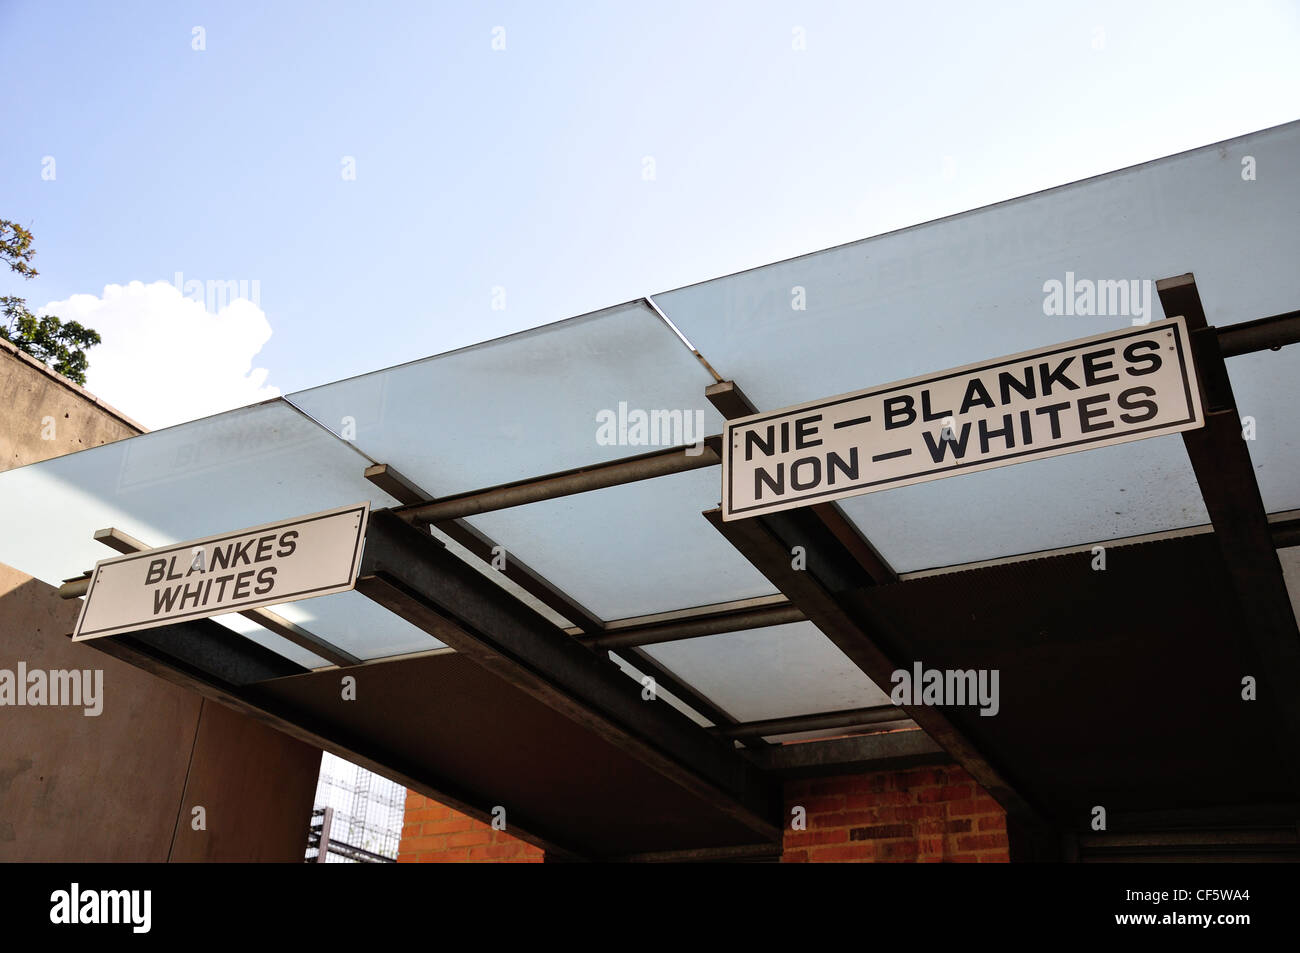 Whites and non-whites entrance to The Apartheid Museum, Johannesburg, Gauteng Province, Republic of South Africa - Stock Image